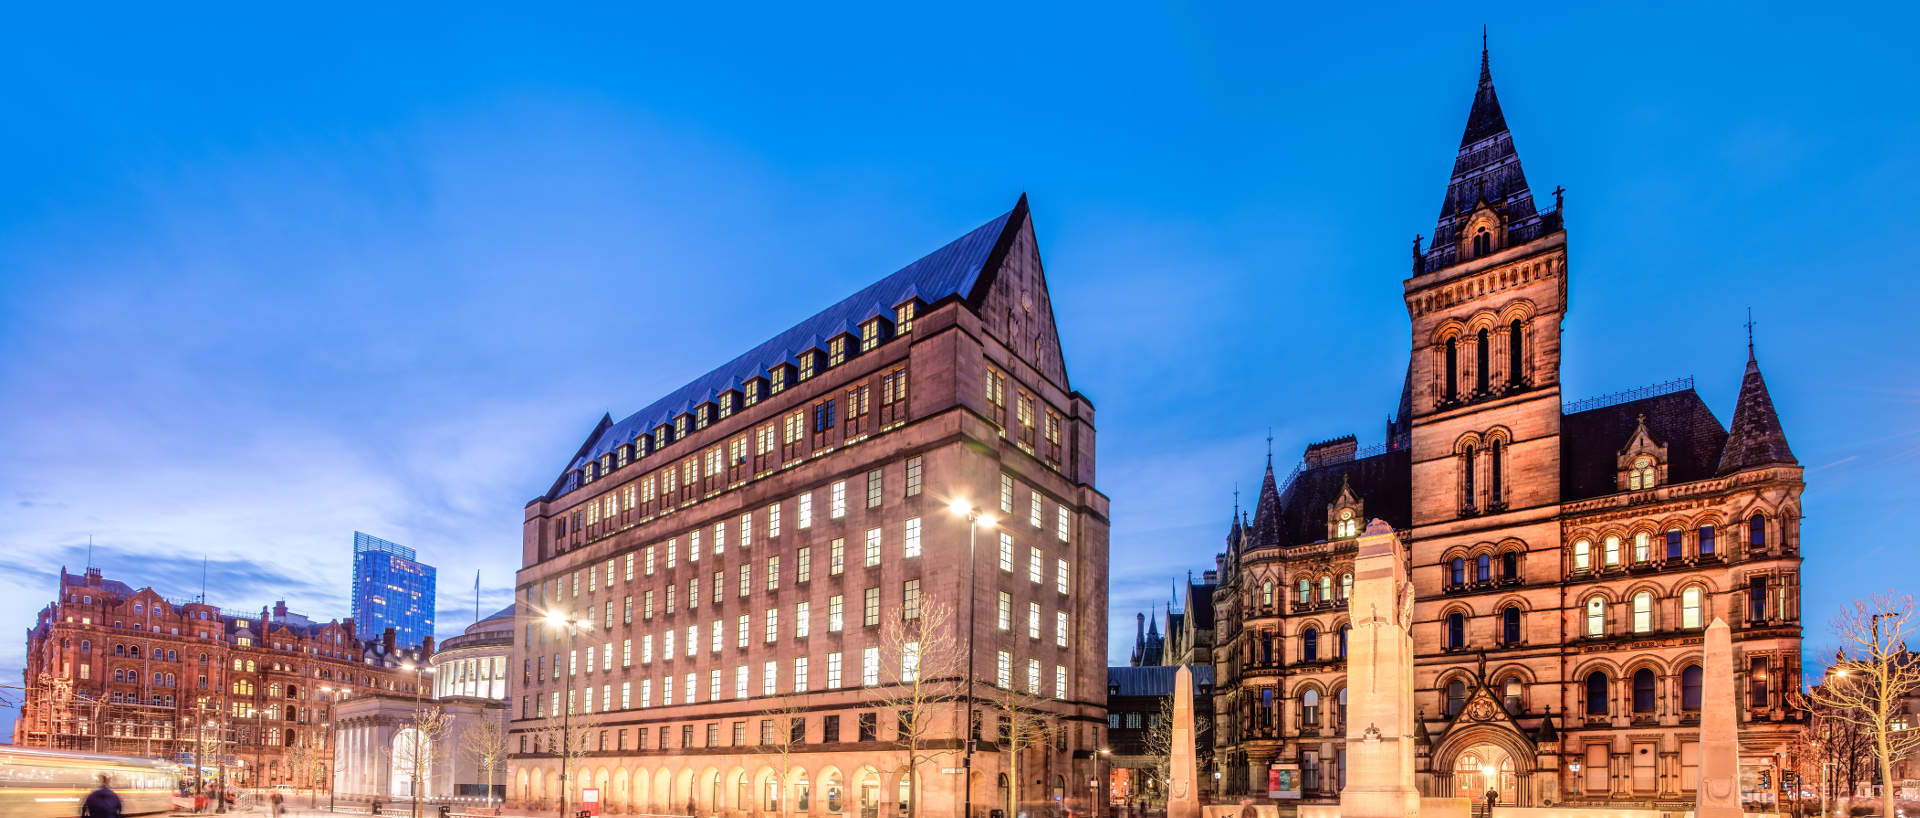 The town hall building in Manchester near PREMIER SUITES Manchester